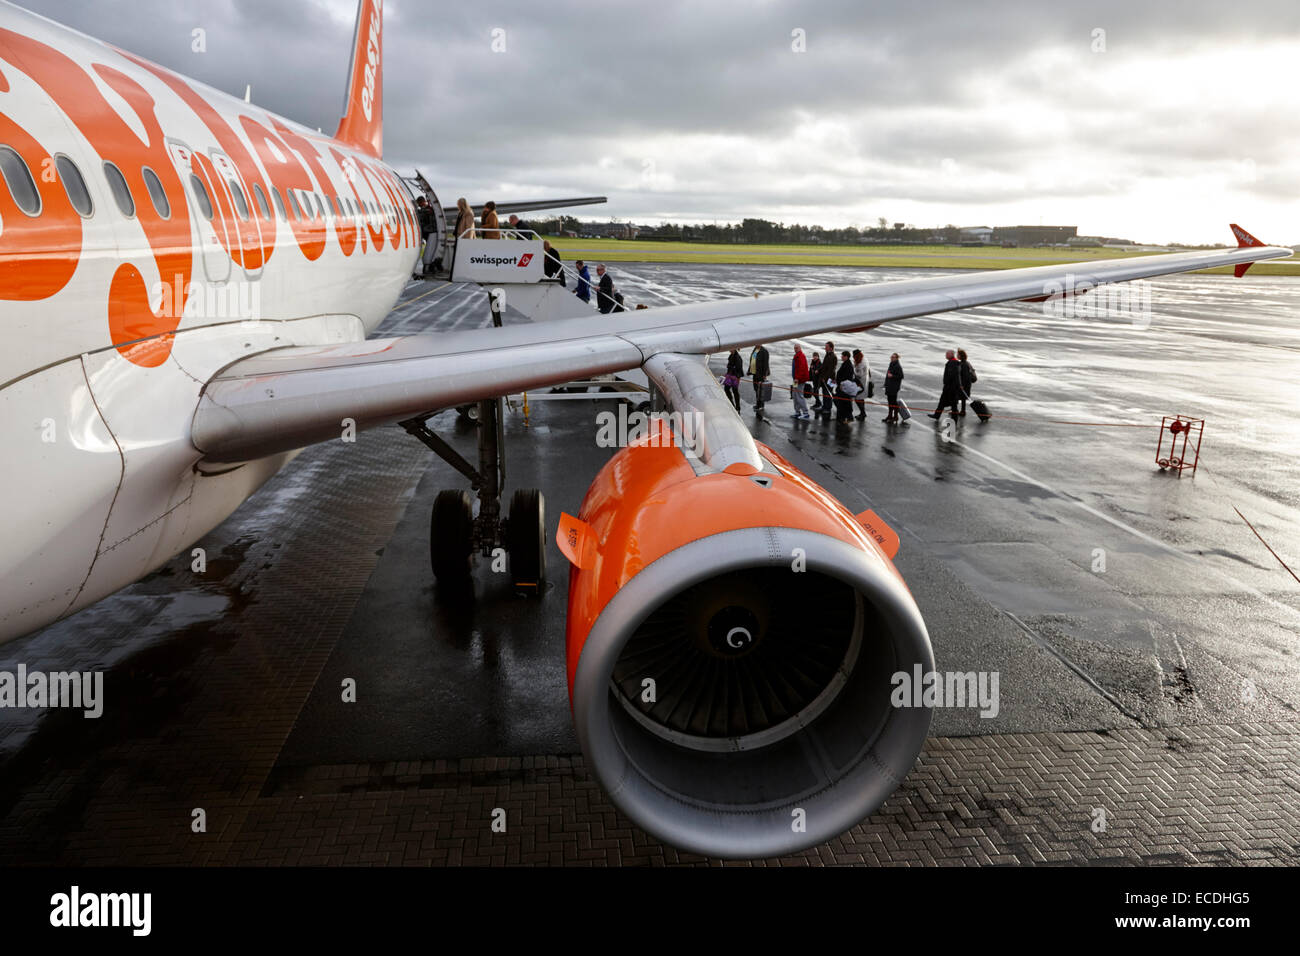 passengers boarding easyjet airbus aircraft at belfast international airport - Stock Image